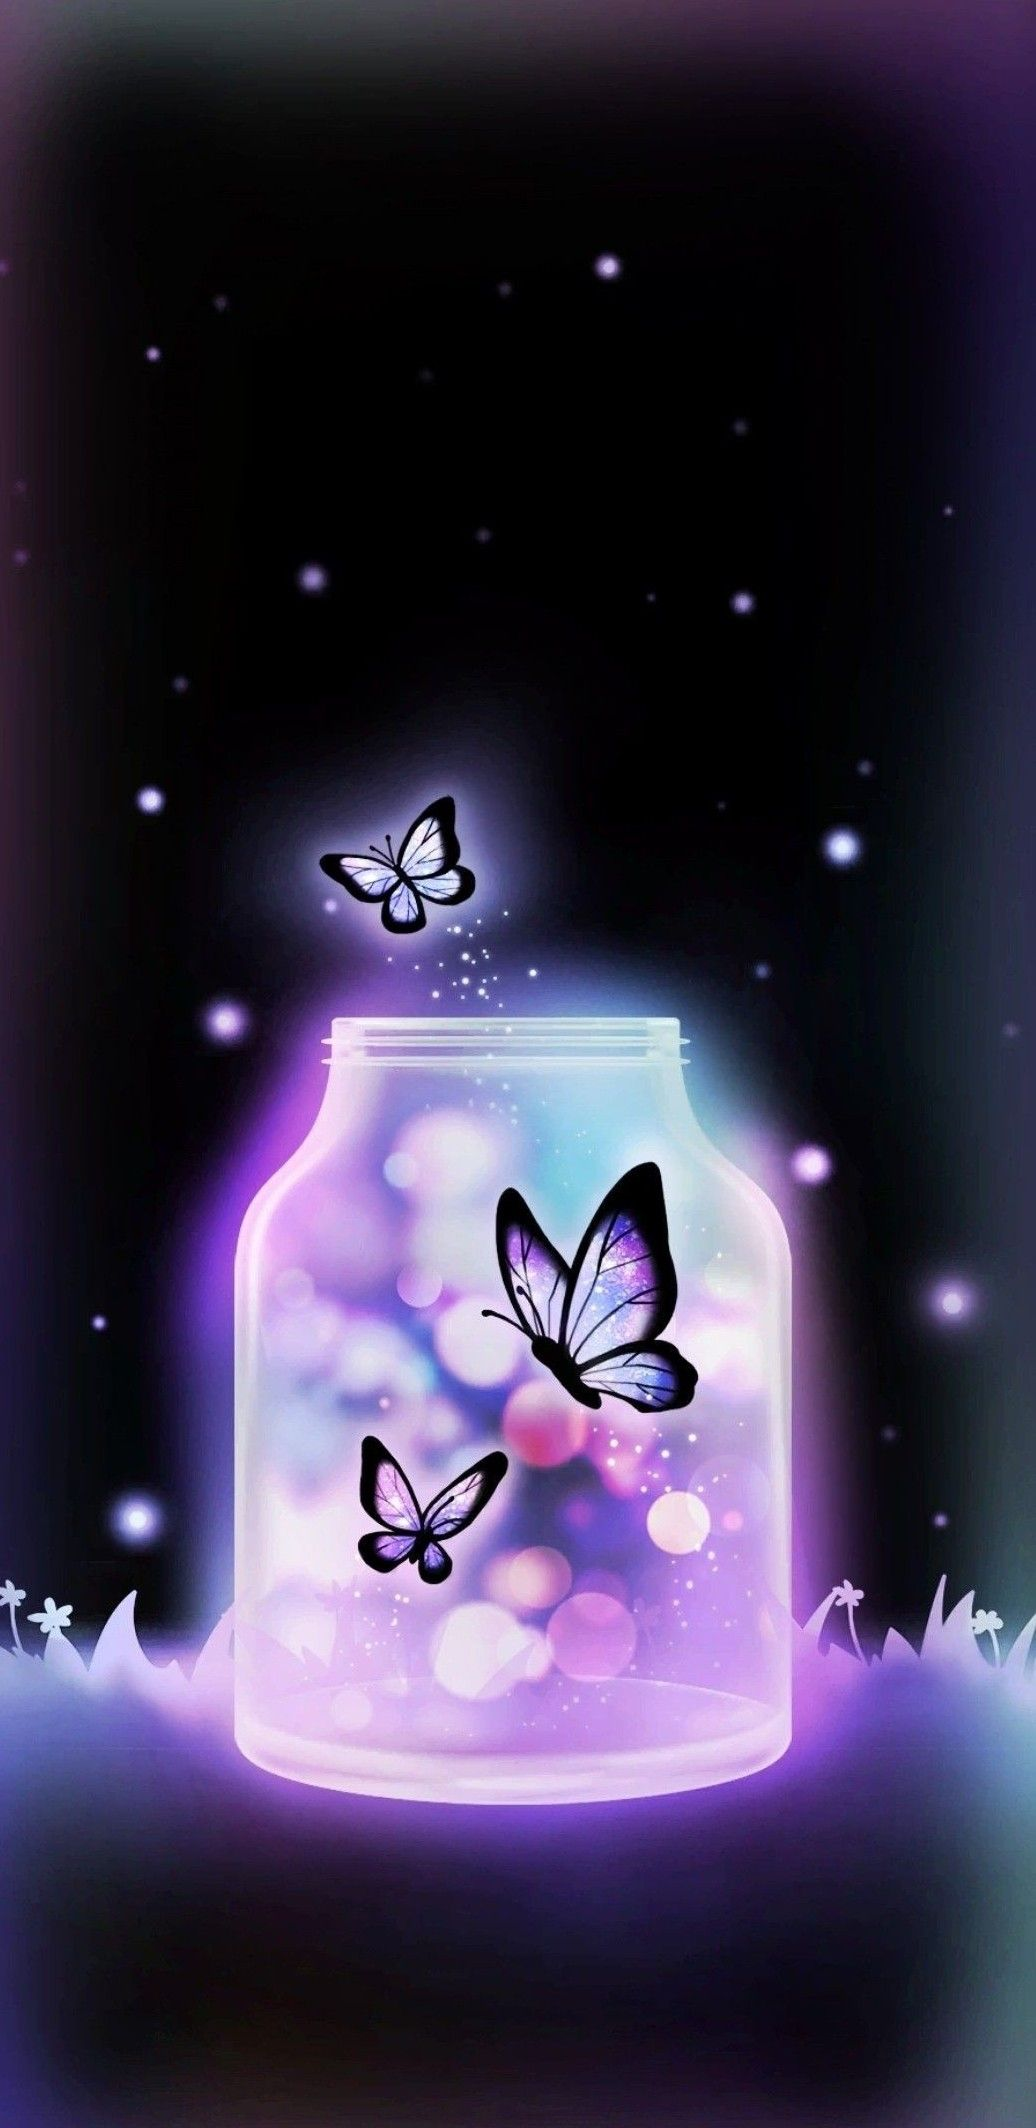 Pin by Fay on Abend/gute Nacht   Butterfly wallpaper ...